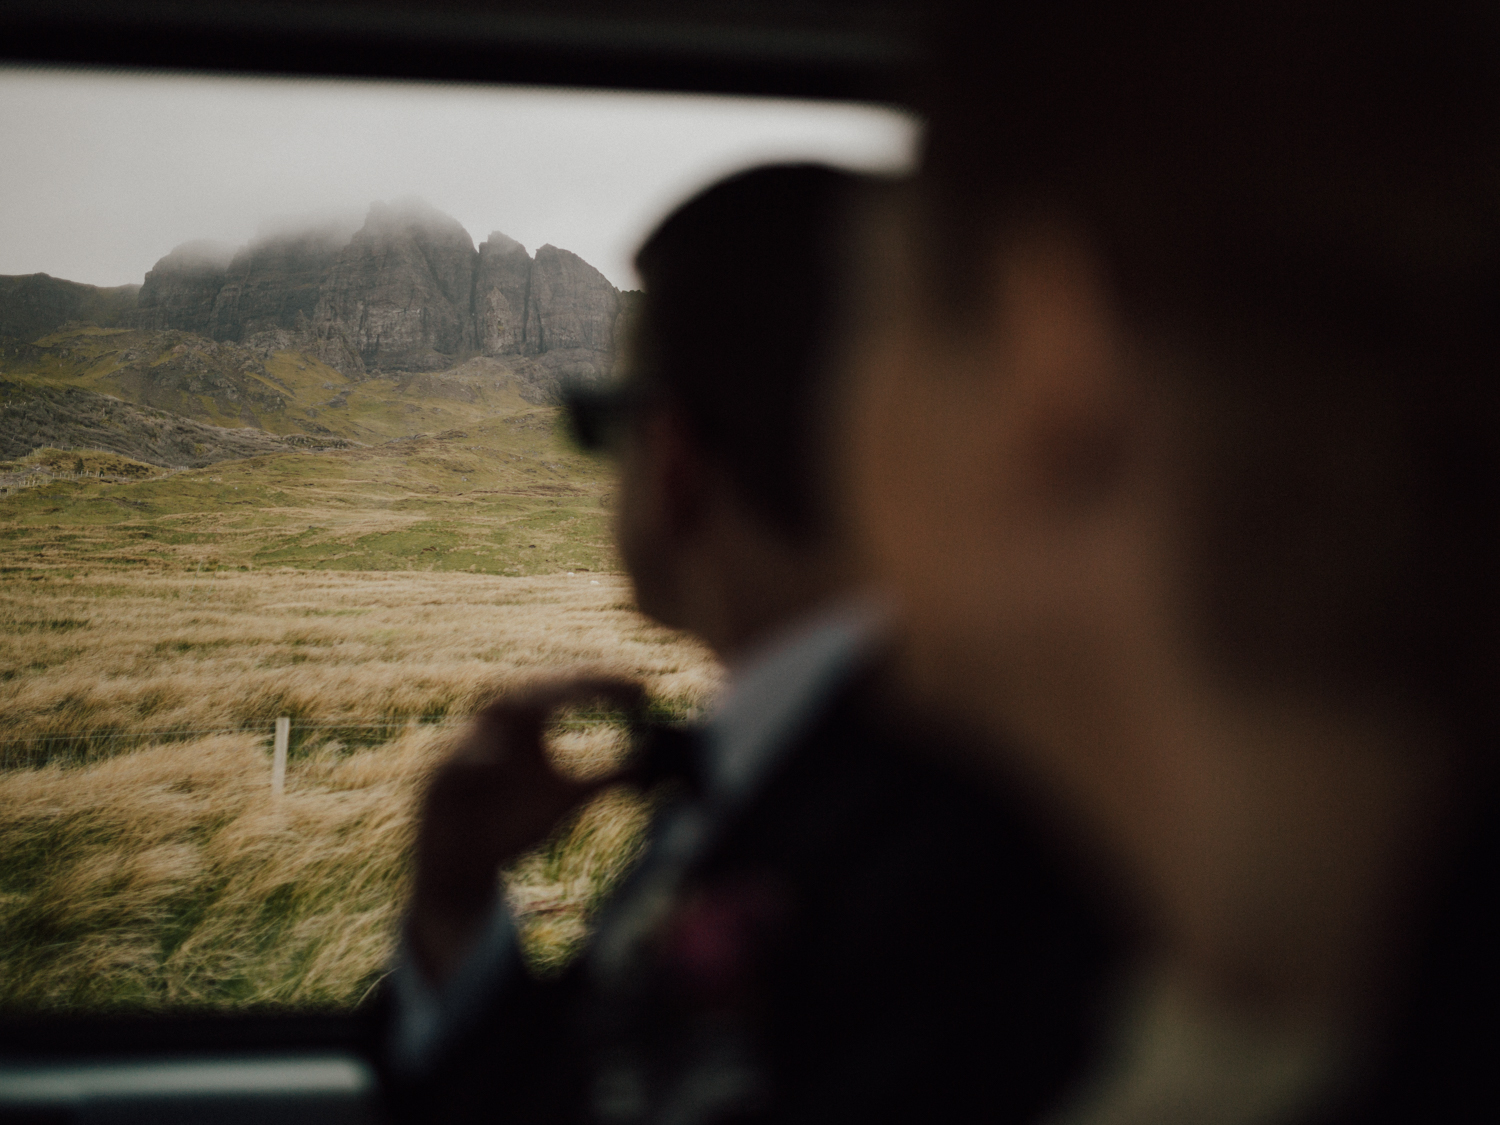 capyture-wedding-photographer-destination-elopement-isle-skye-scotland-365